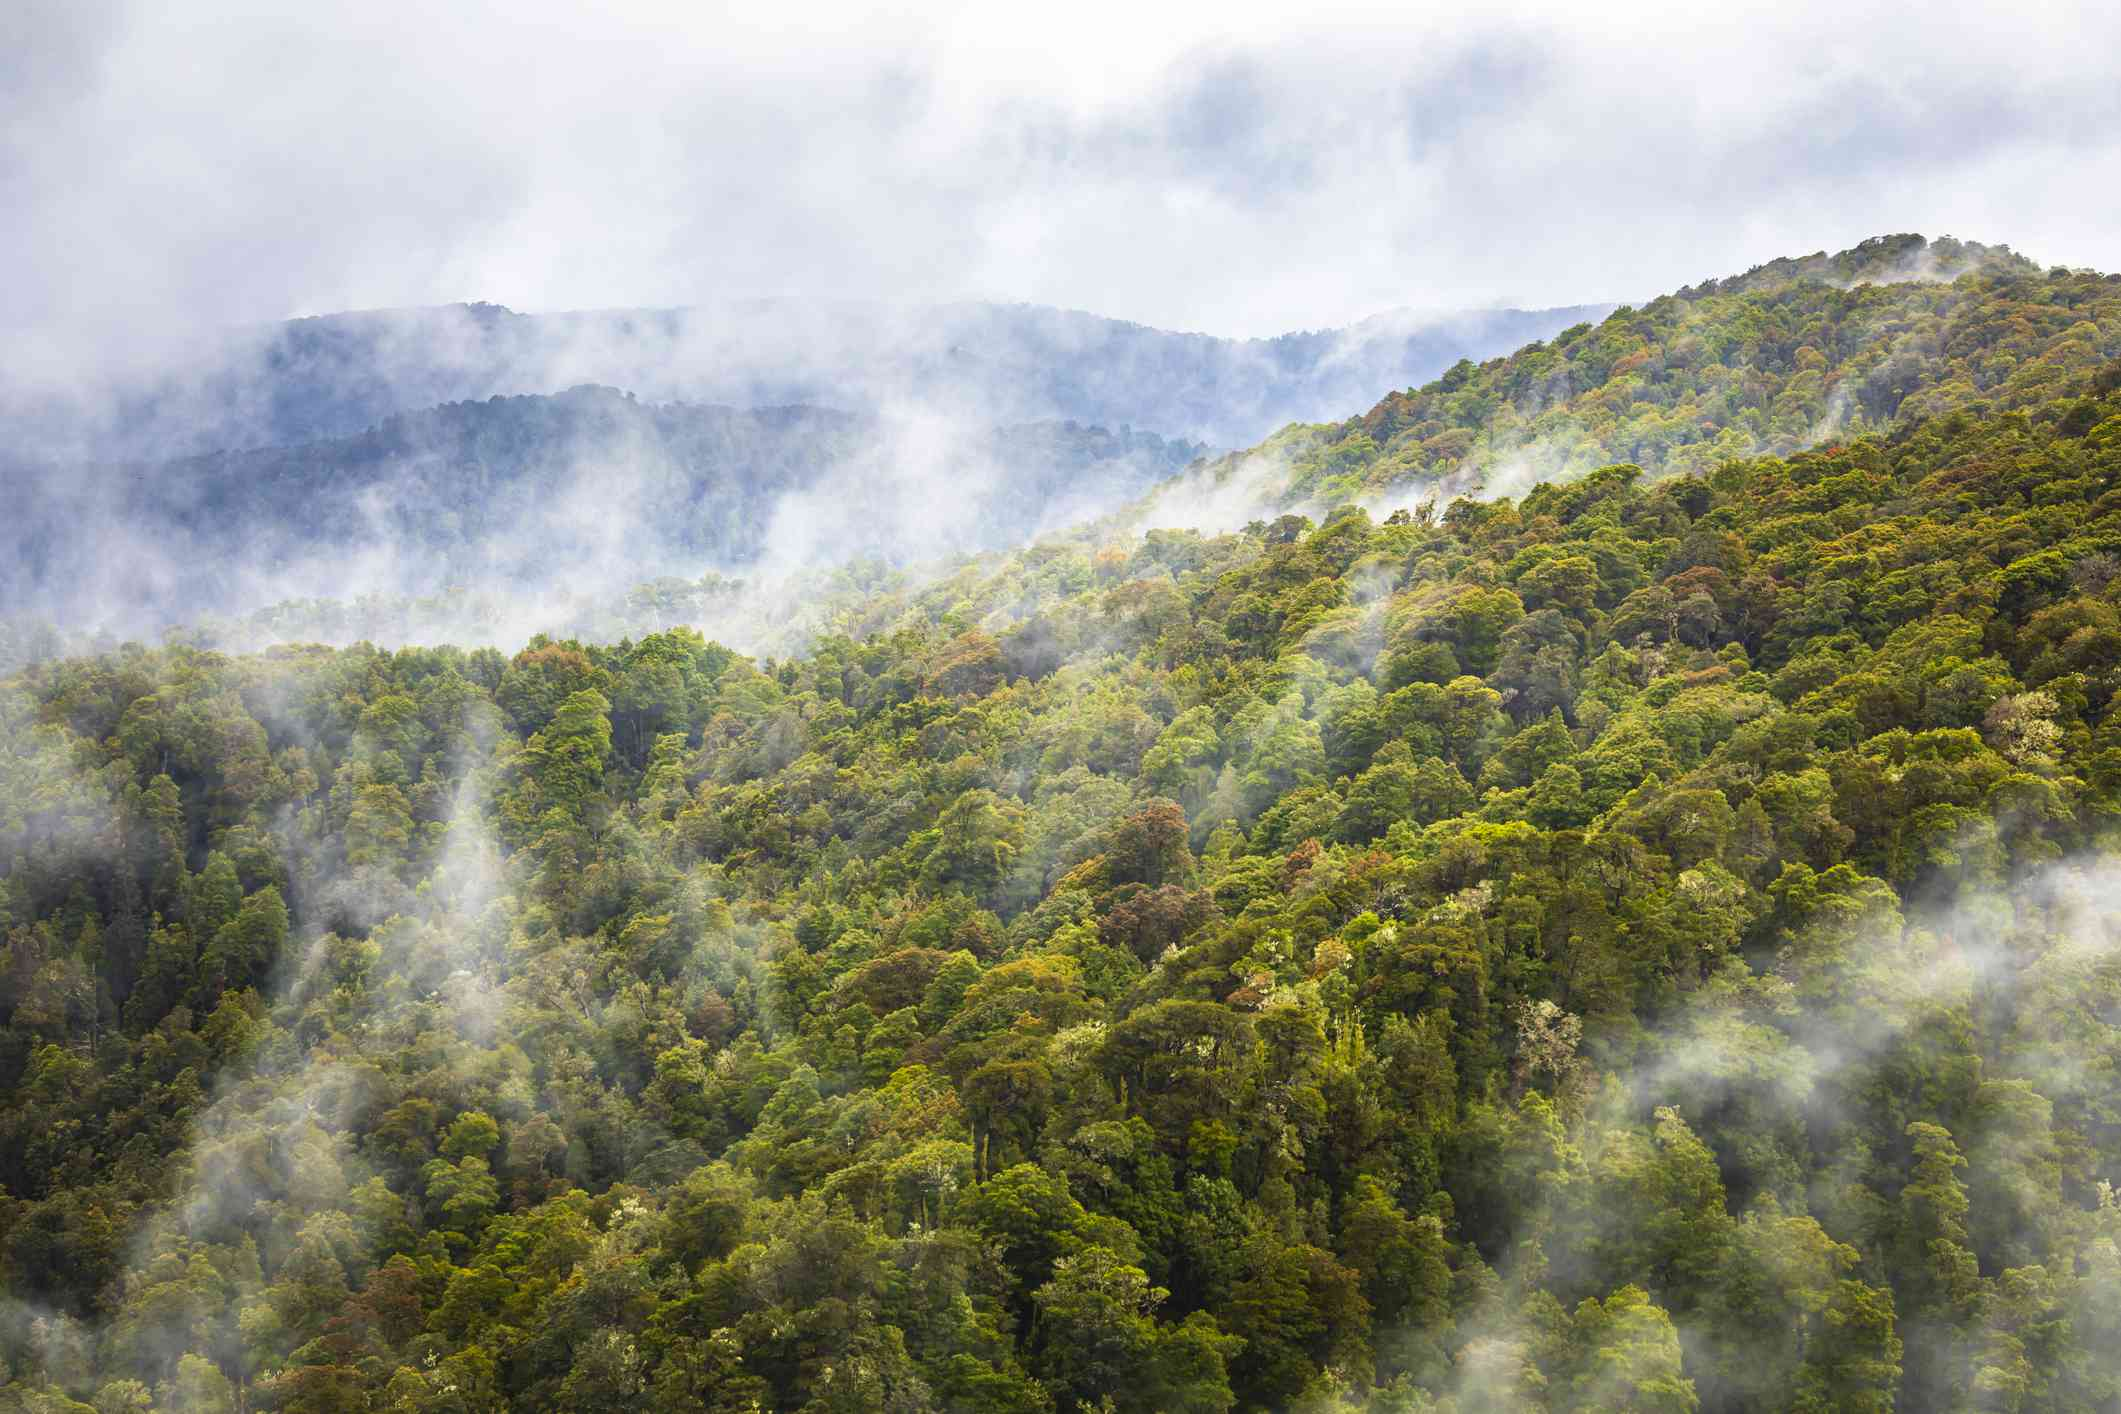 aerial view showing hills of multi-colored treetops and fog rising above